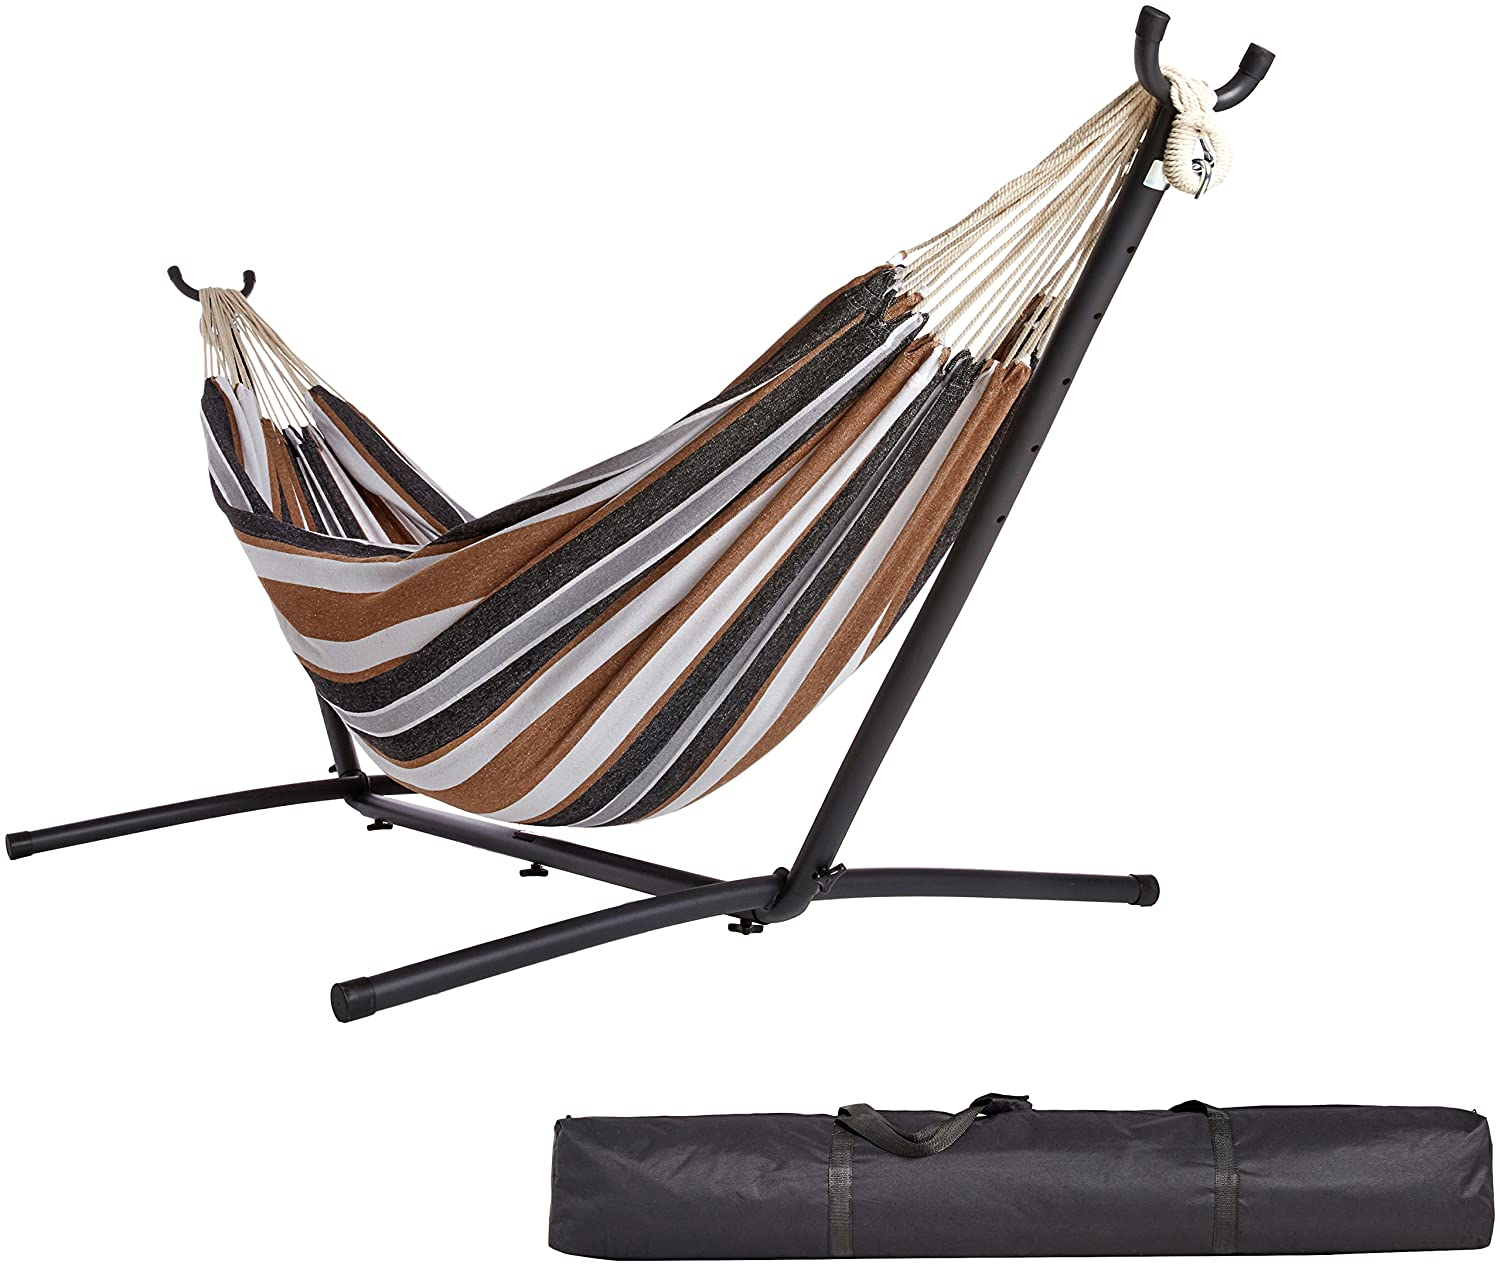 amazonbasics fabric hammock with stand amazon    hammocks stands  u0026 accessories  patio lawn  u0026 garden      rh   amazon